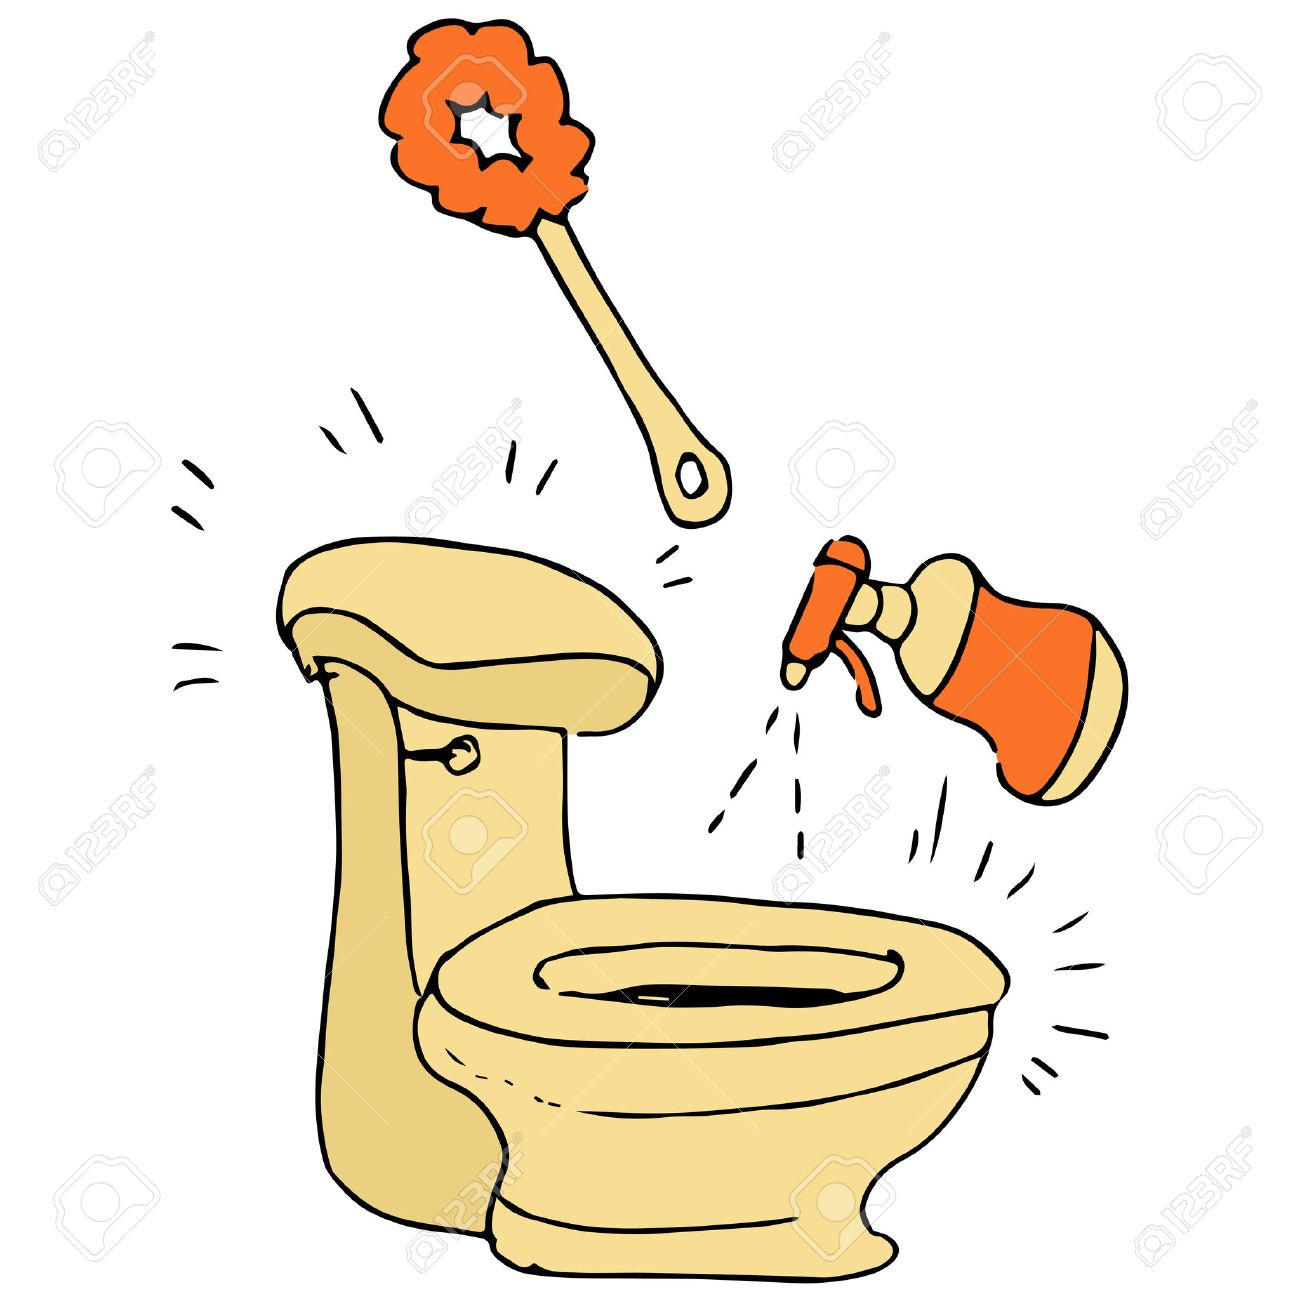 Image result for toilet being cleaned